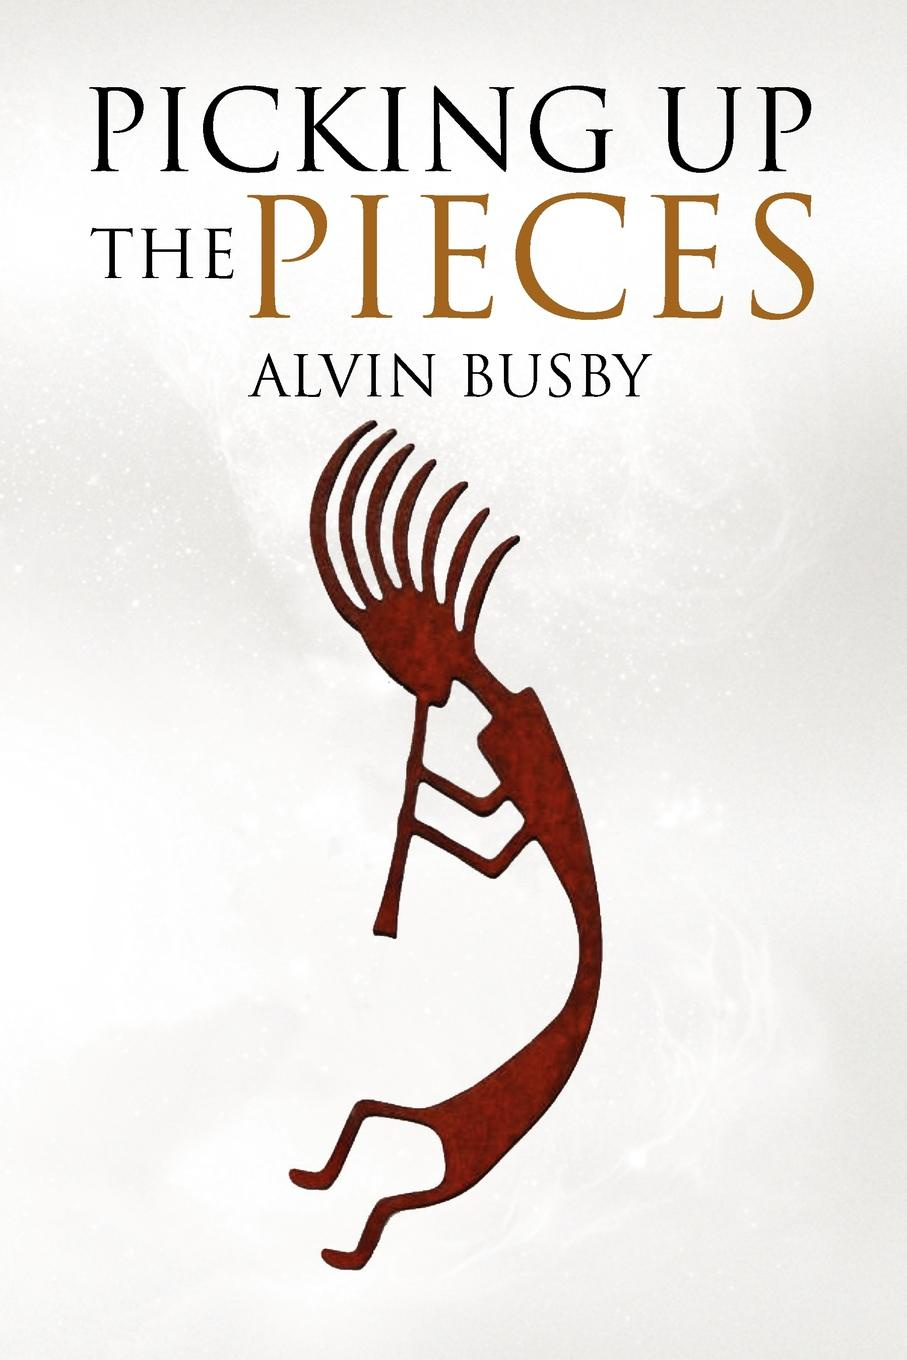 Alvin Busby Picking Up the Pieces